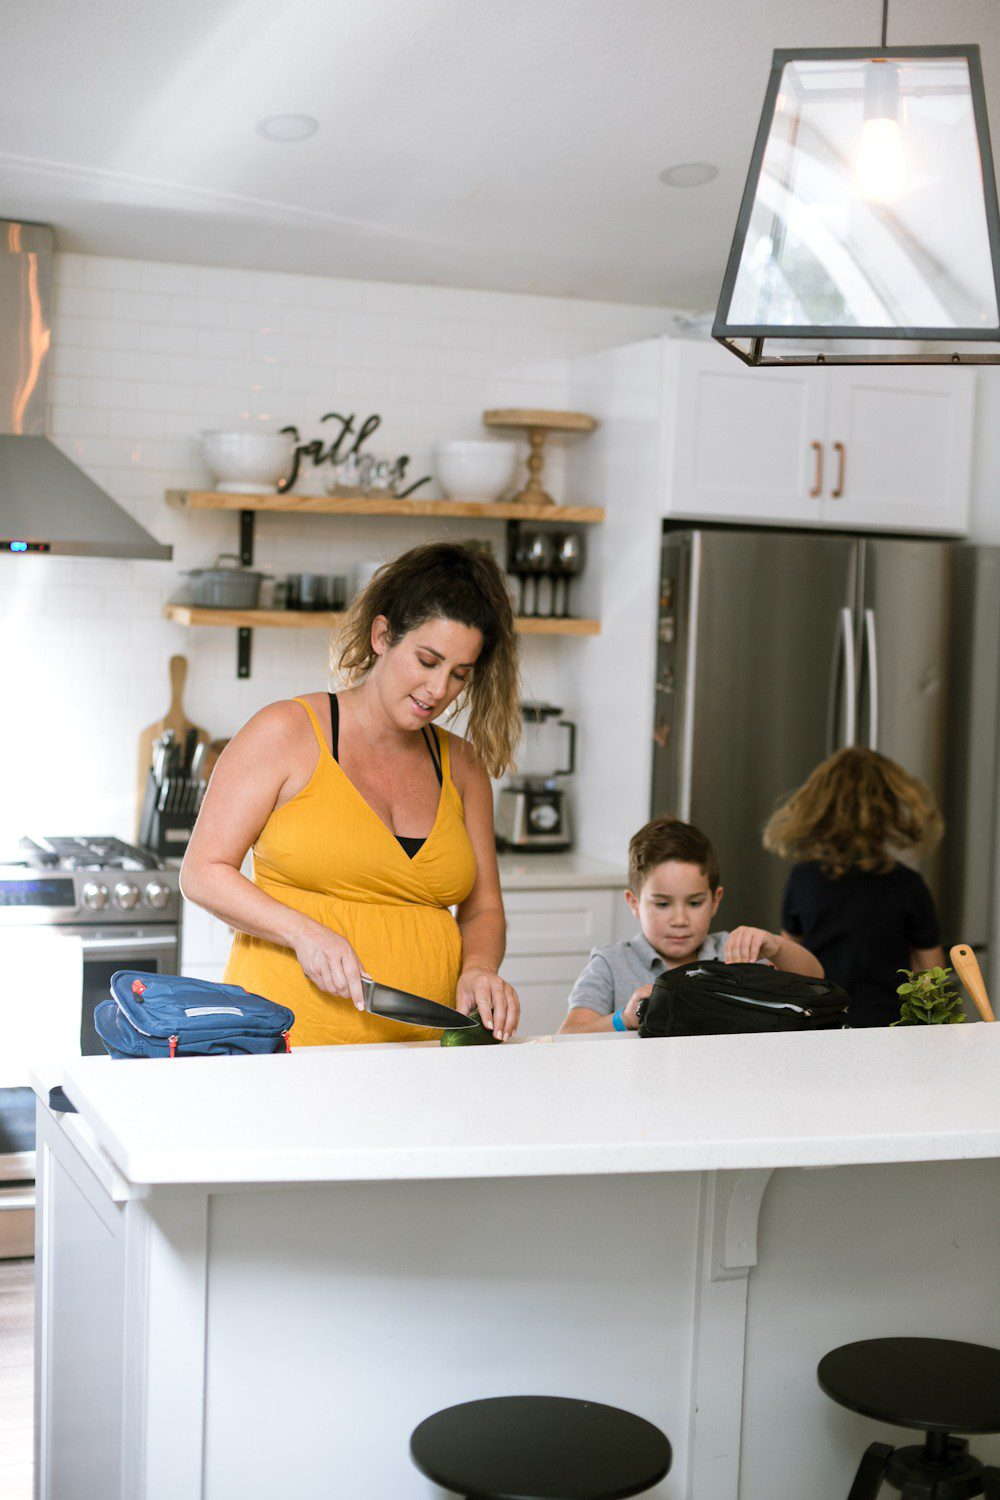 5 Sensational Strategies to Make Getting Ready for School Easy | How to Get Ready for School: 5 Sensational Strategies to Make Easy on your Family by popular Tampa life and style blog, Fresh Mommy: image of a woman standing her kitchen cutting a cucumber while her kids pack things into their lunch bags.